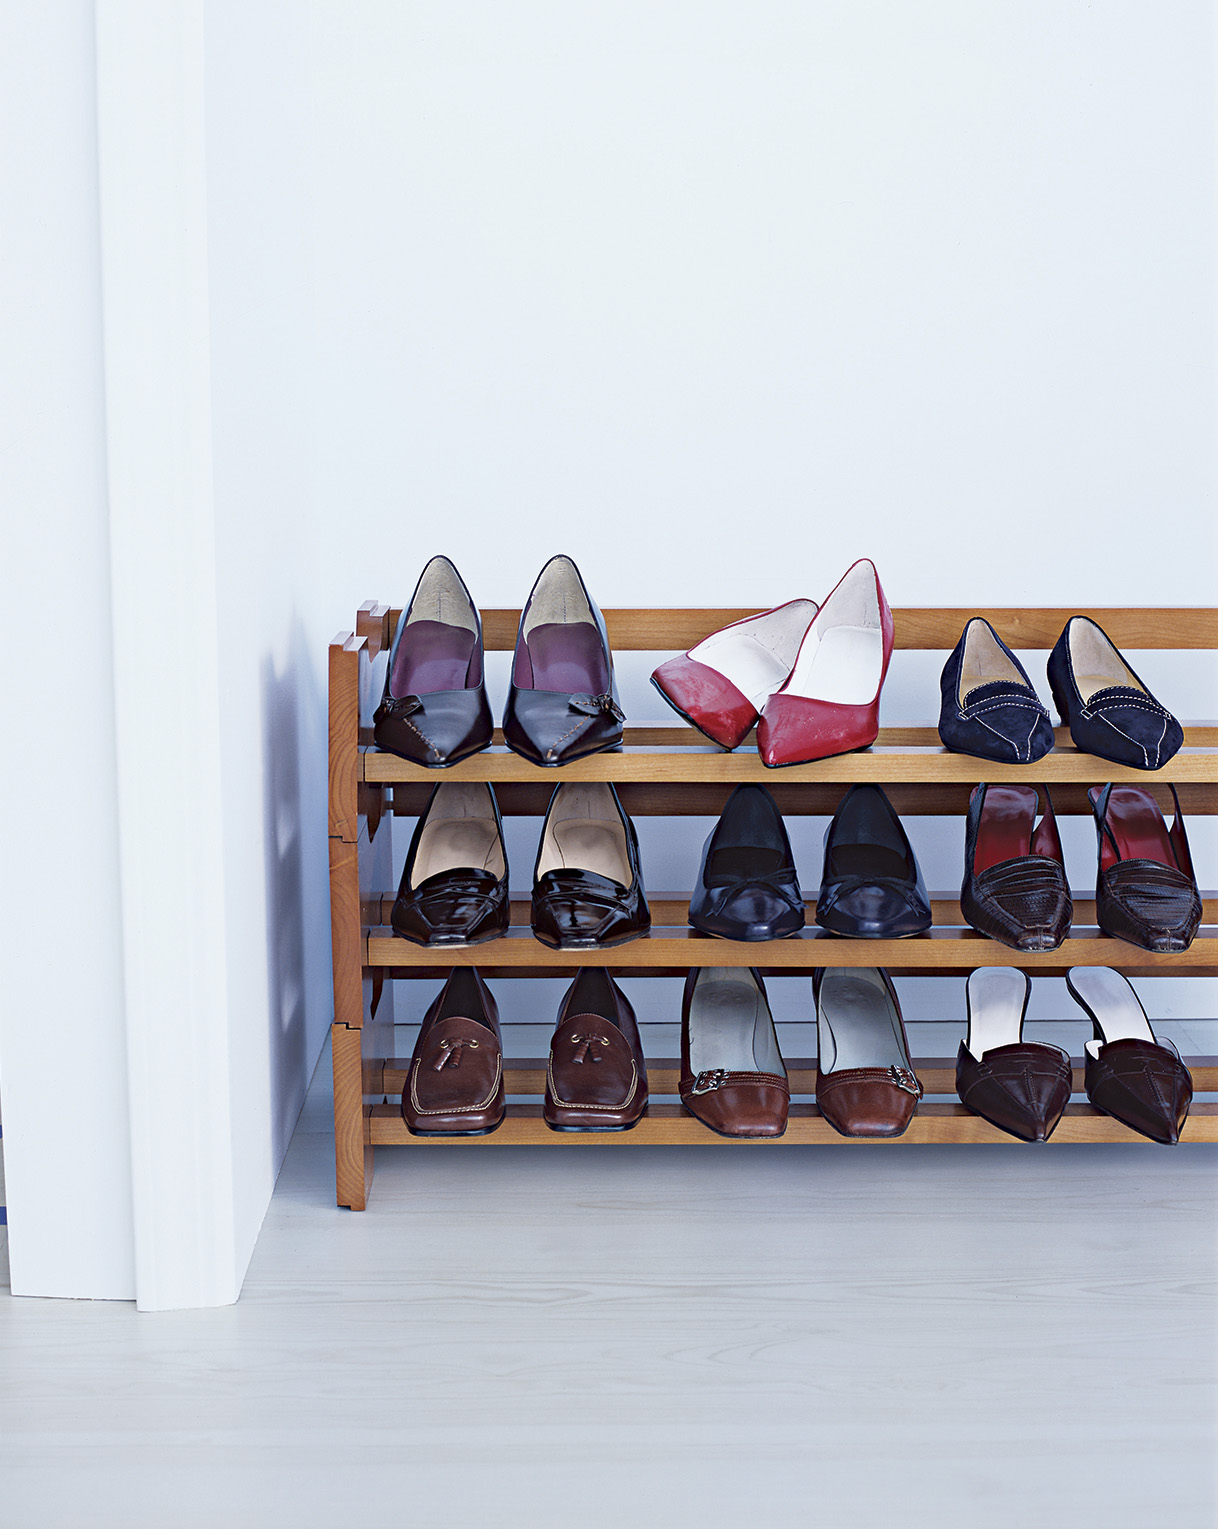 How Can I Encourage House Guests to Take Off Their Shoes?